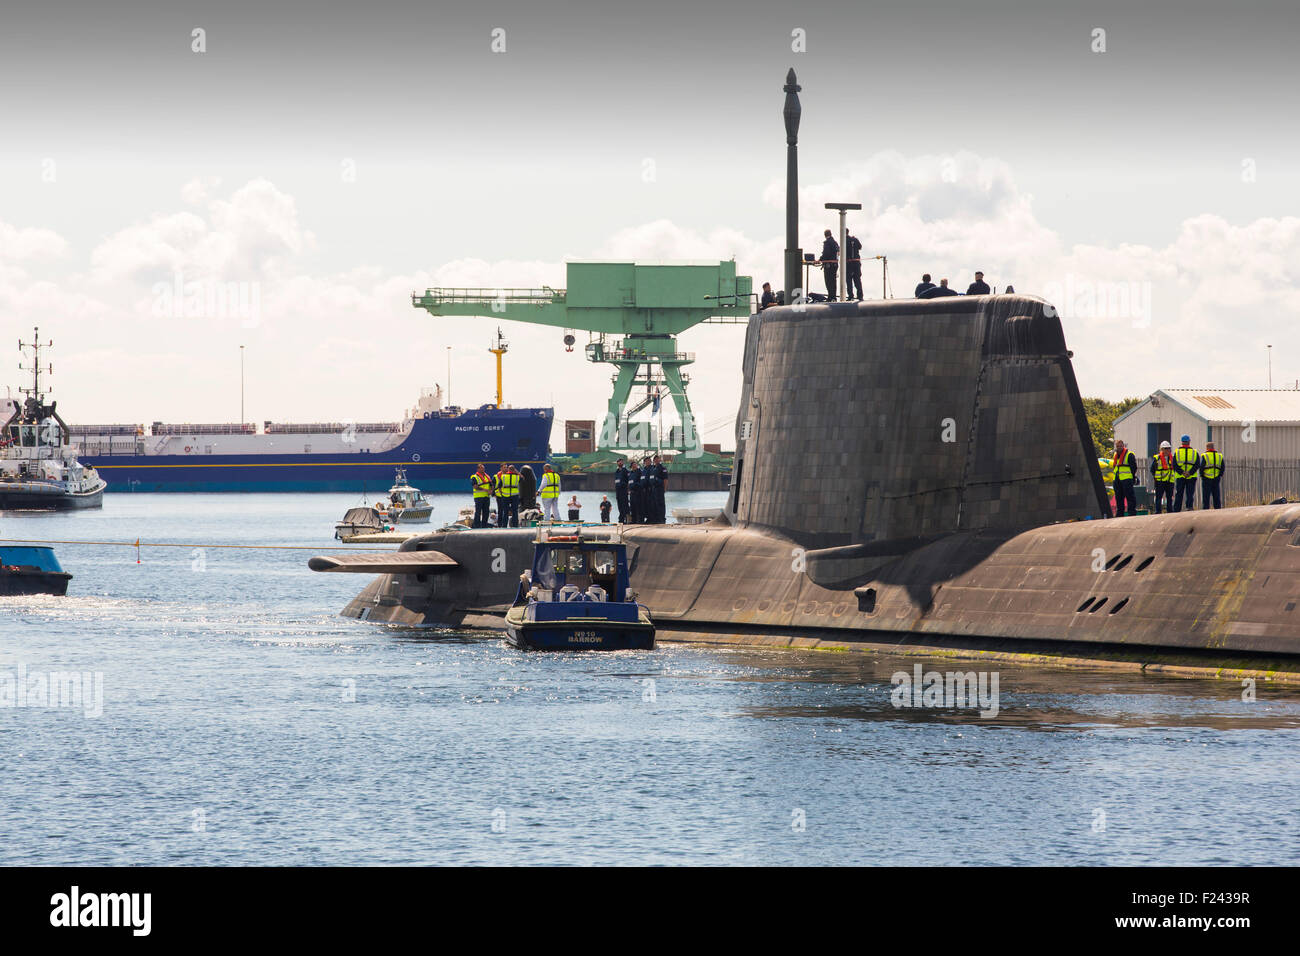 The Artful an Astute class hunter killer nuclear powered submarine is moved from BAE Systems in Barrow in Furness - Stock Image